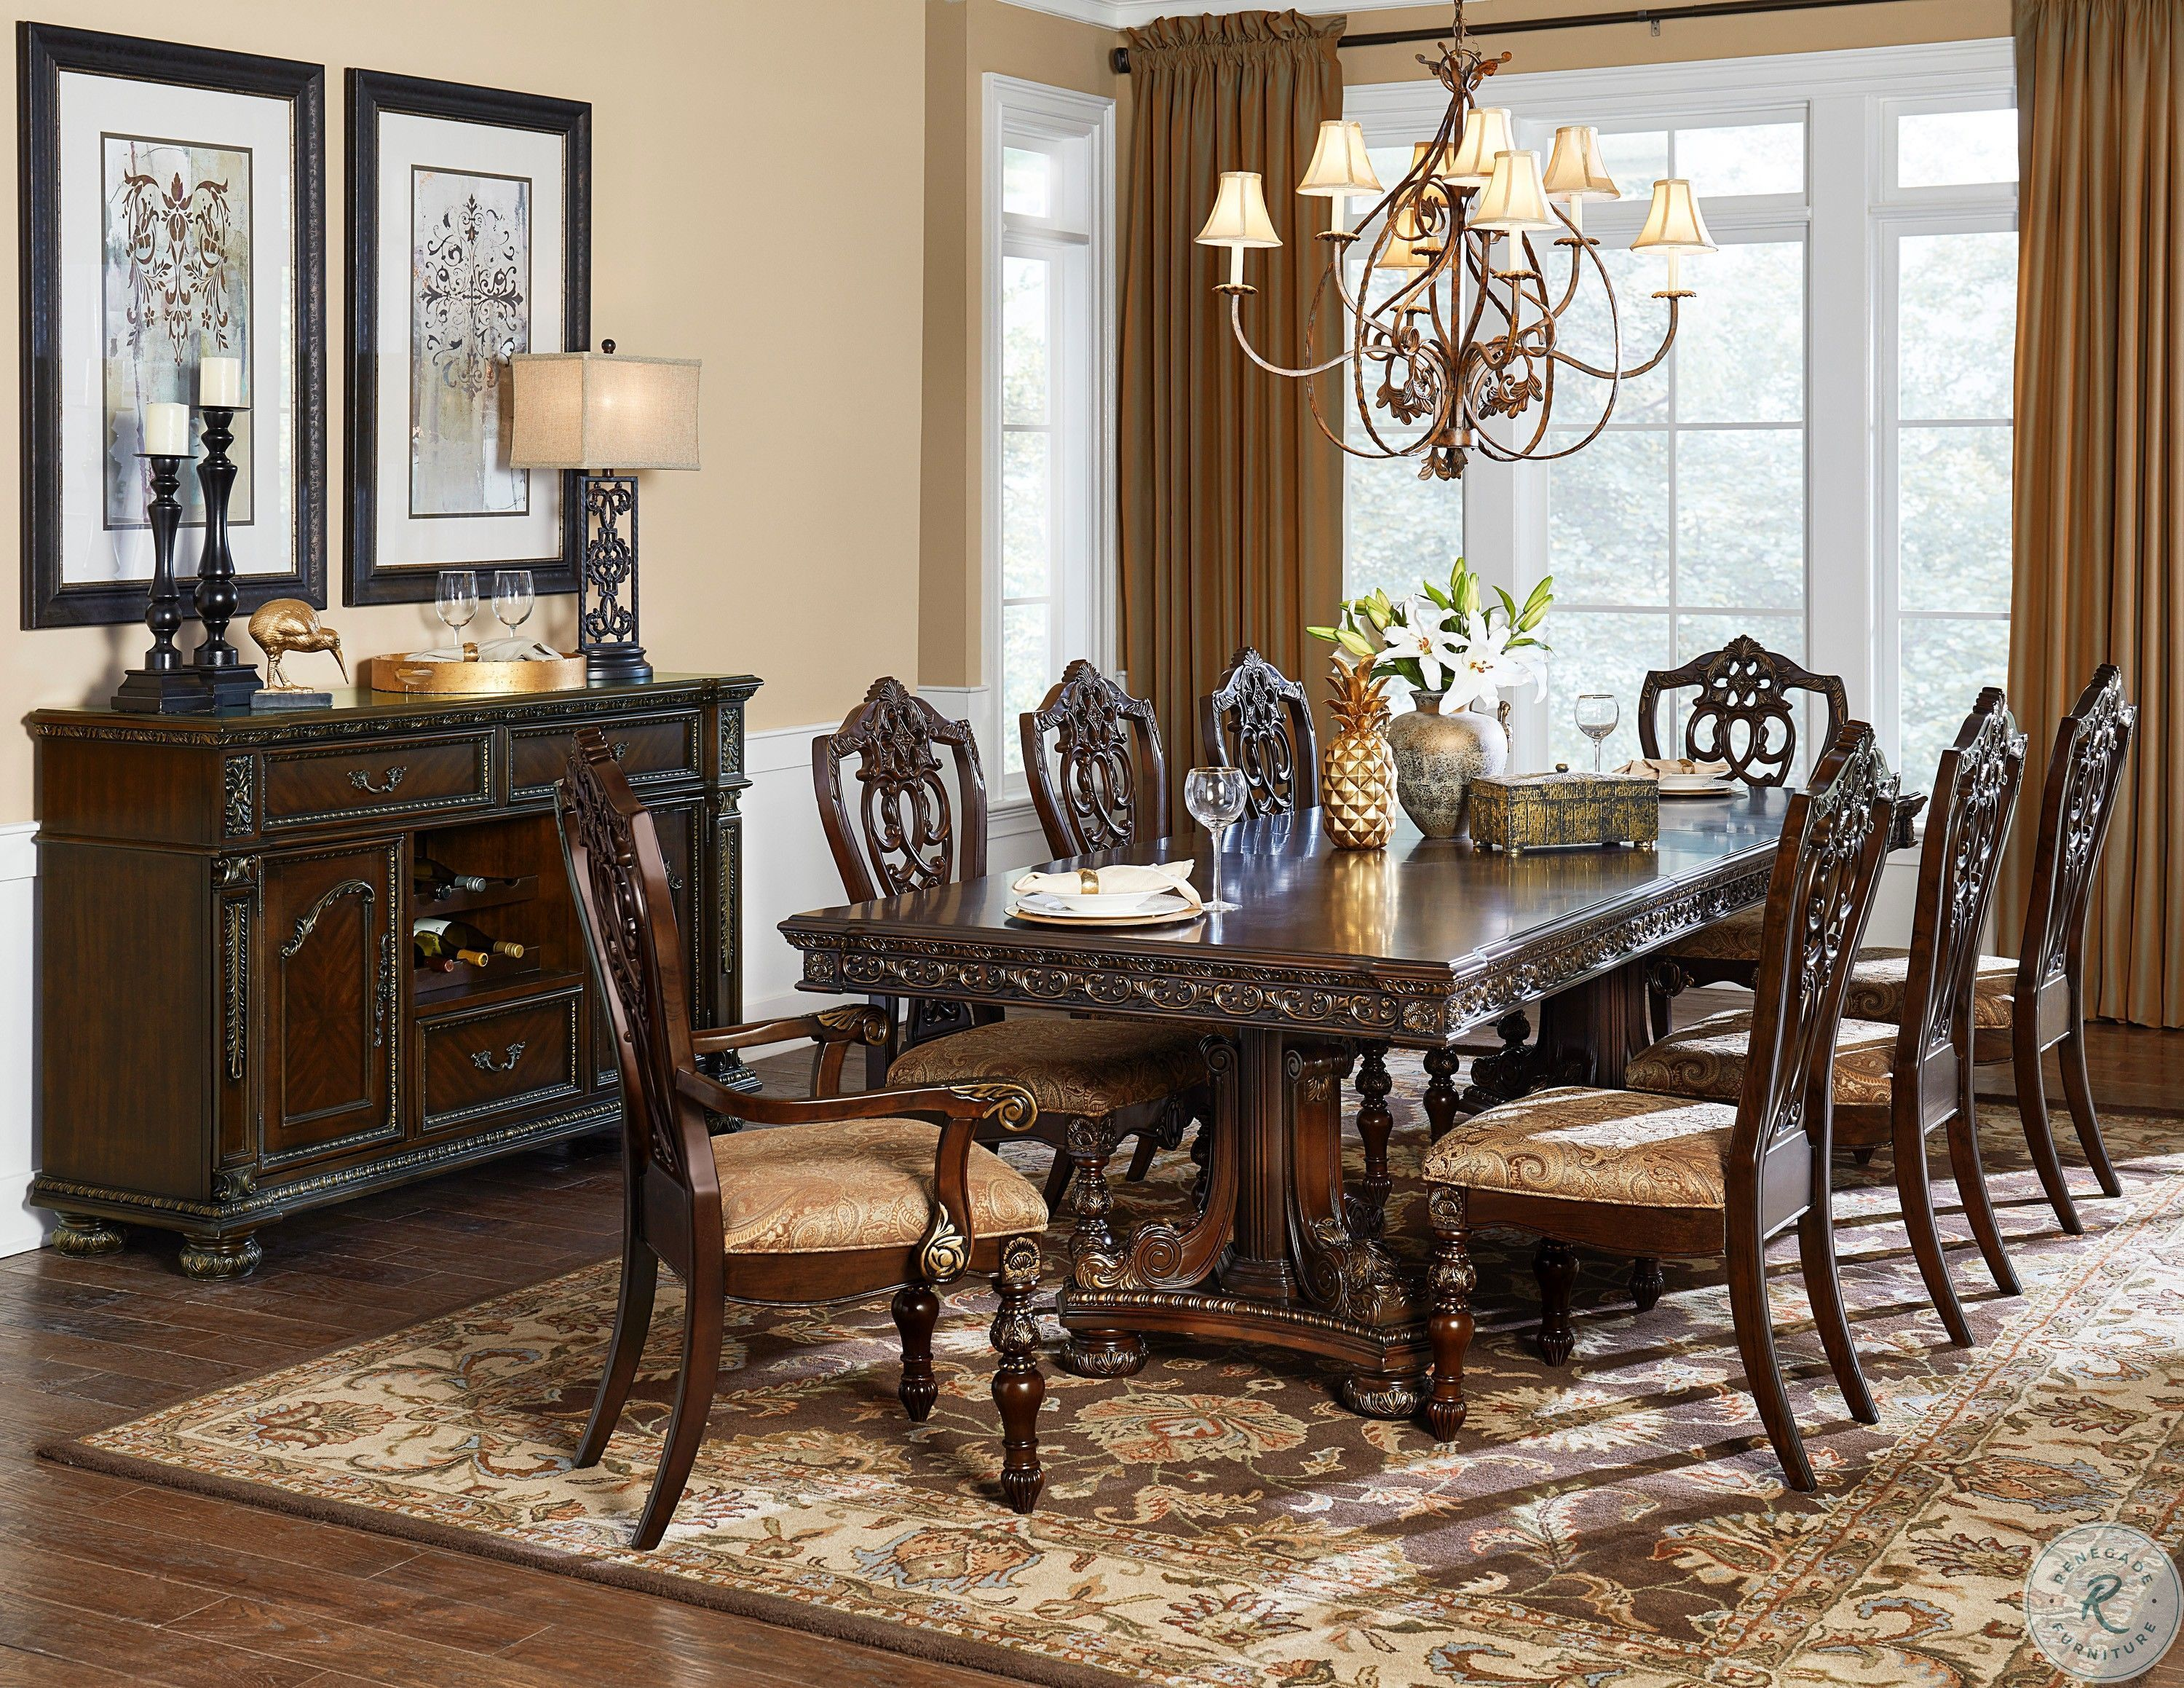 Catalonia Dark Cherry Double Pedestal Dining Room Set Hoe 1824 112 Room In 2020 Classic Dining Room Primitive Dining Rooms Dining Room Decor Traditional